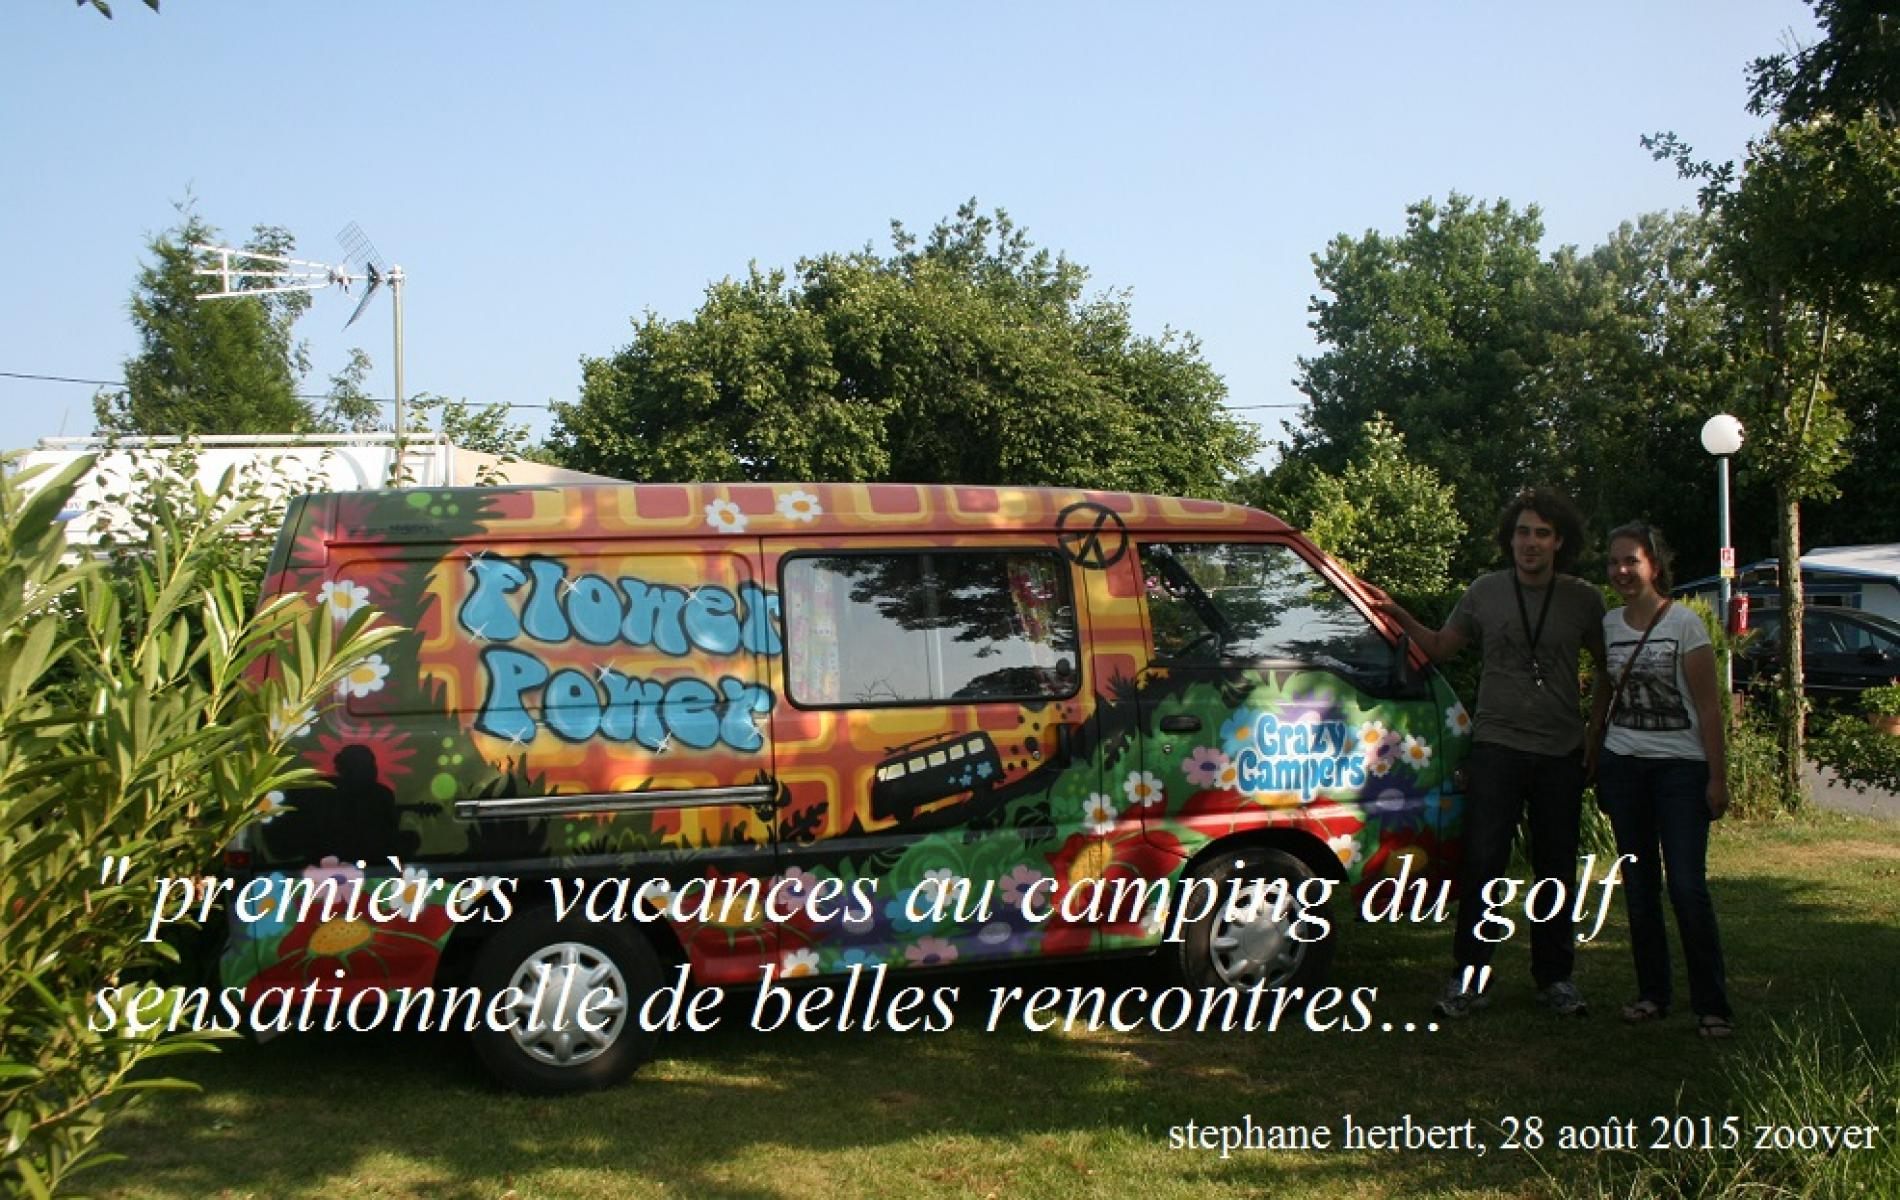 Le camping diispose d'emplacements pour camping car